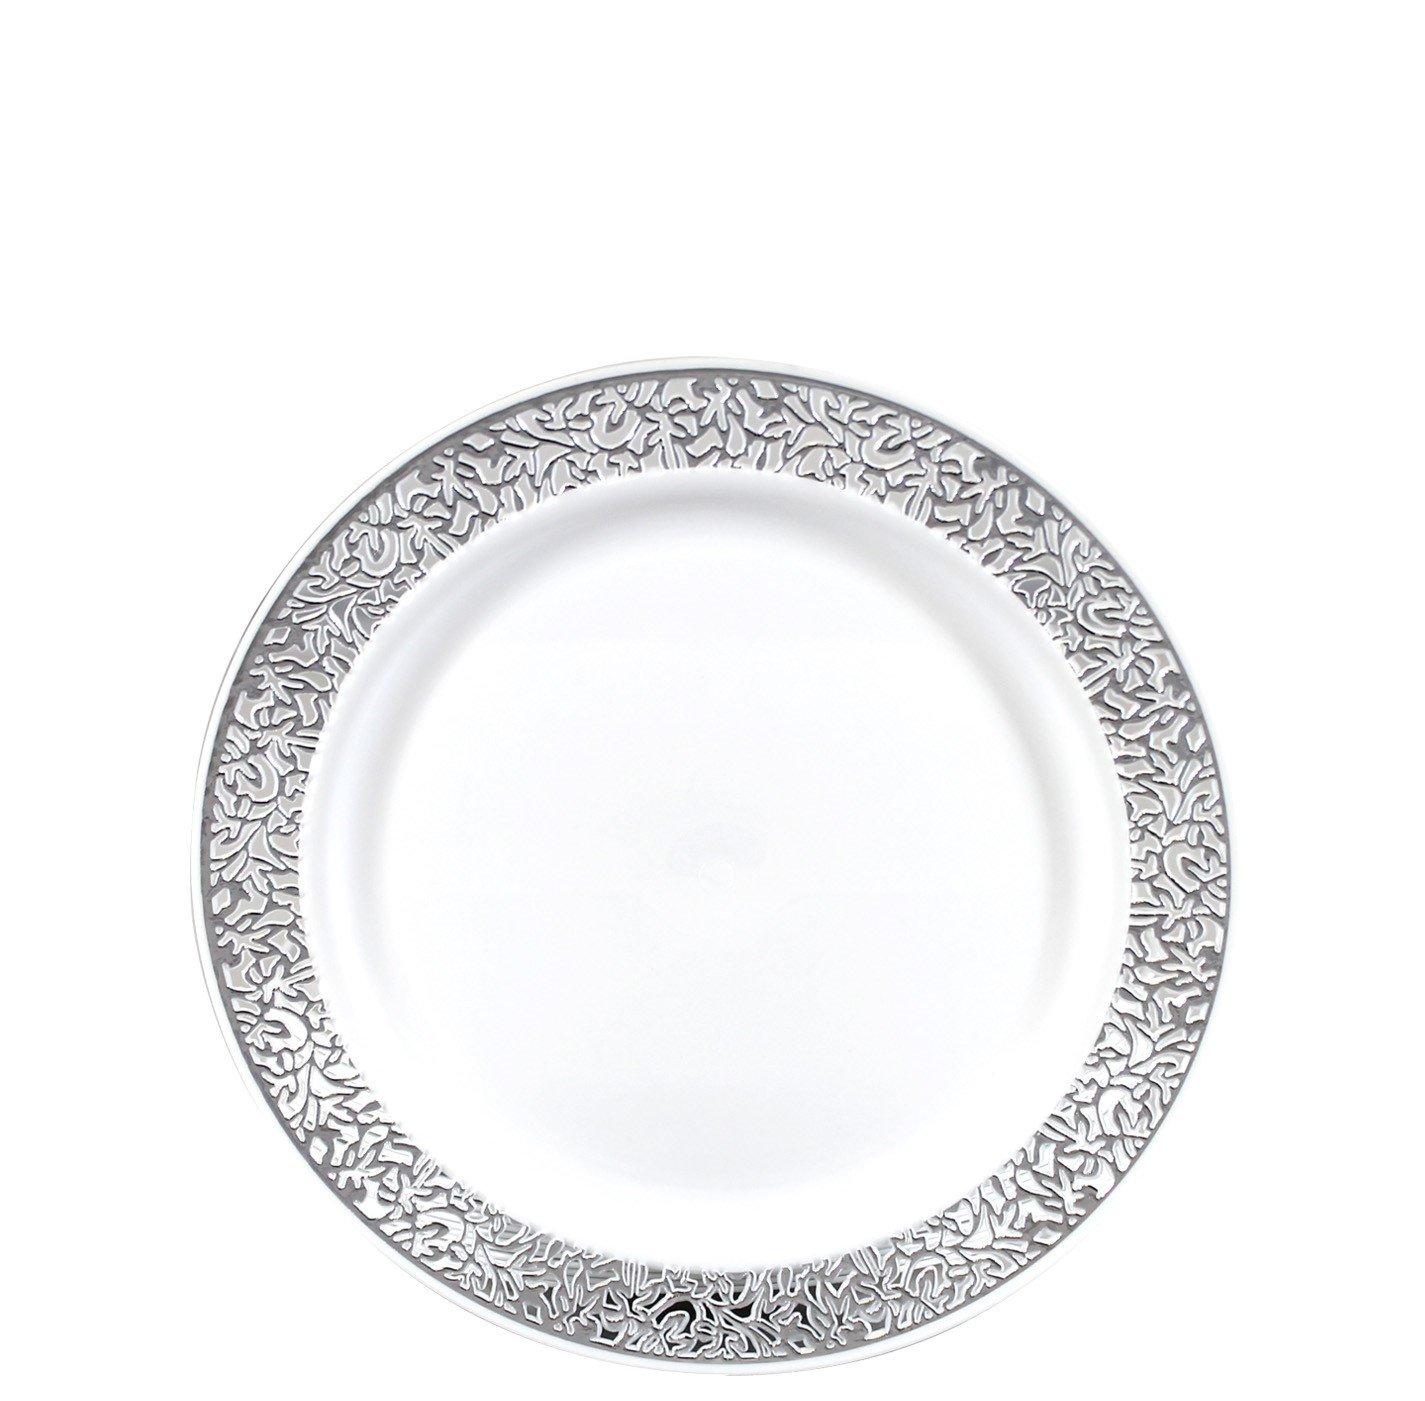 Gourmet Home Products 24 Count Premium Reusable Heavyweight Plastic Salad Plates, 7.5'', White/Silver, Metallic Lace Trim